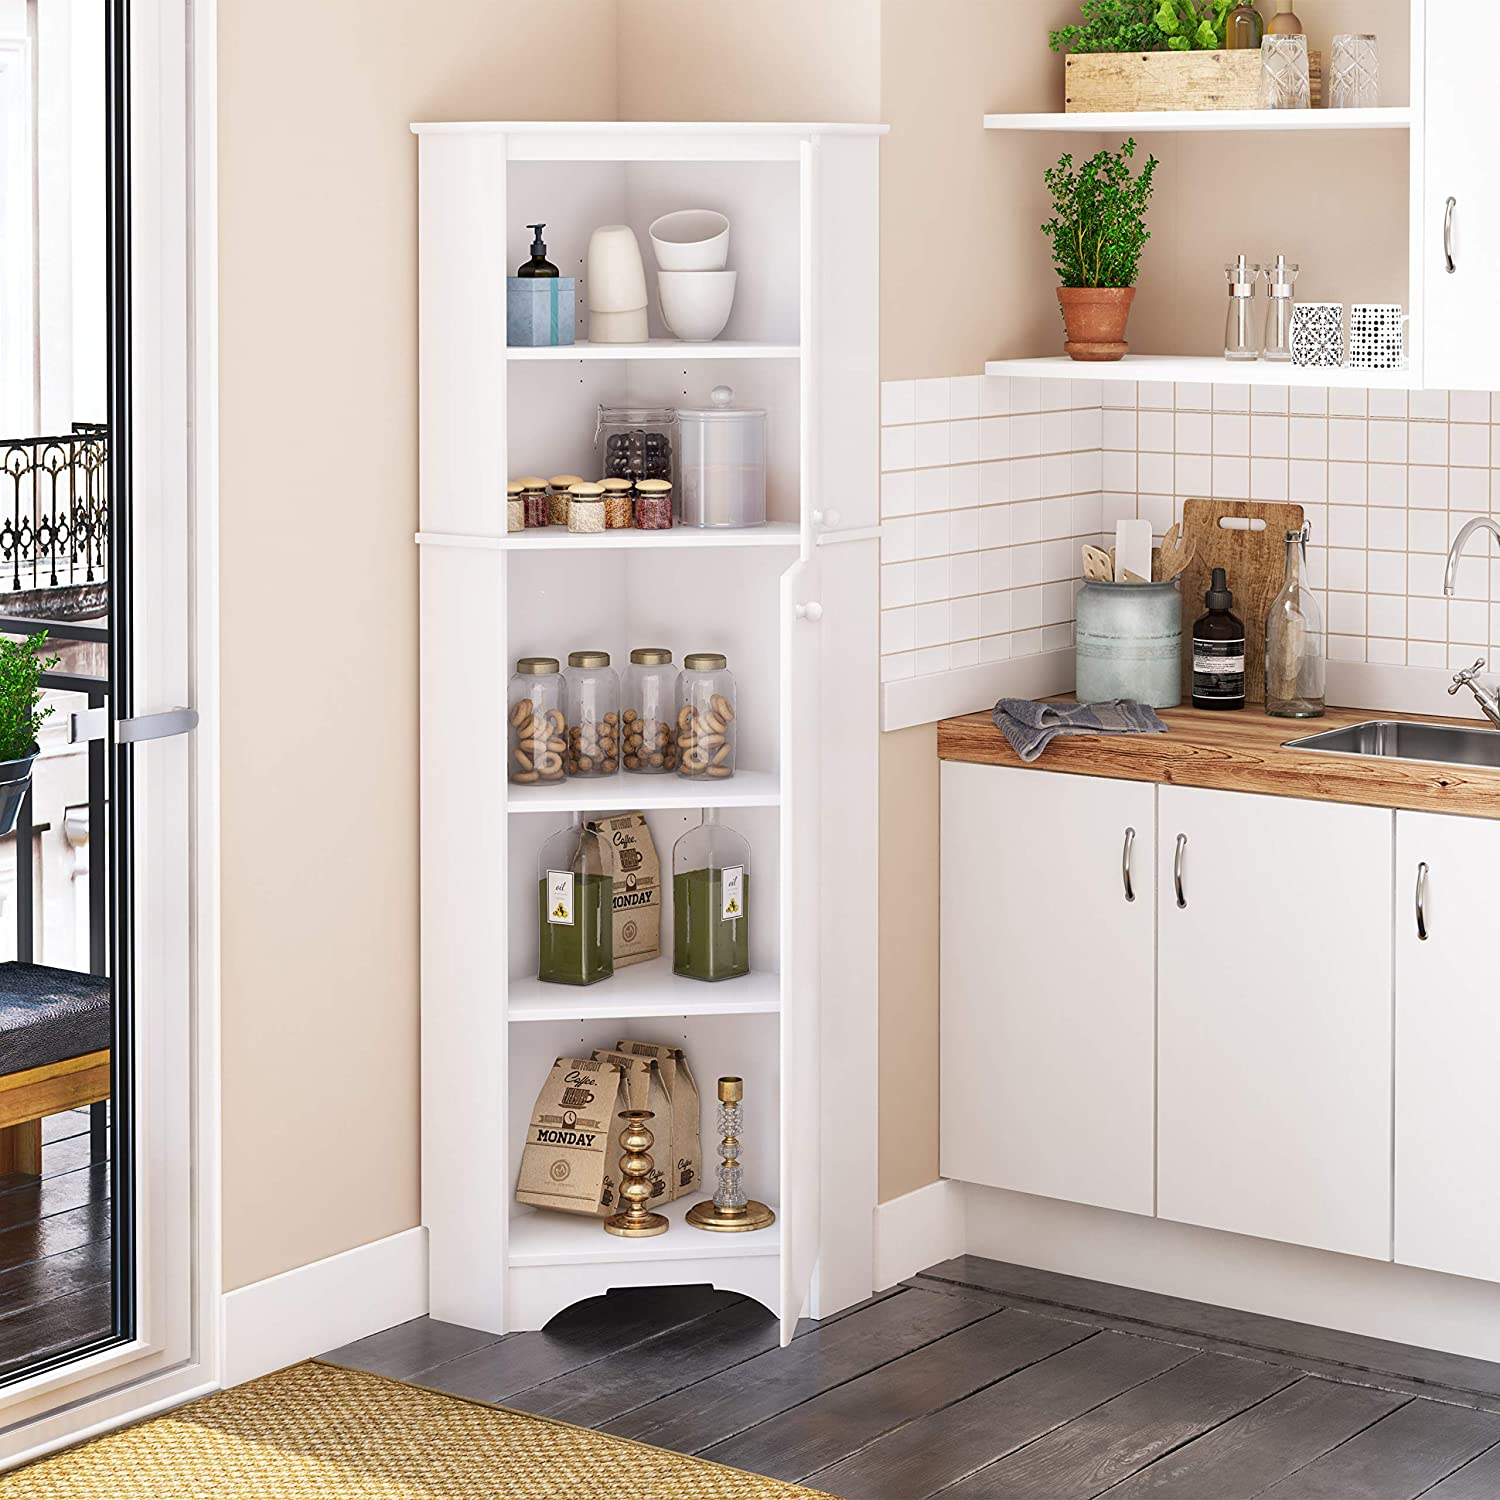 15 Best Corner Pantry Cabinets You Can, Corner Cabinet With Doors And Shelves